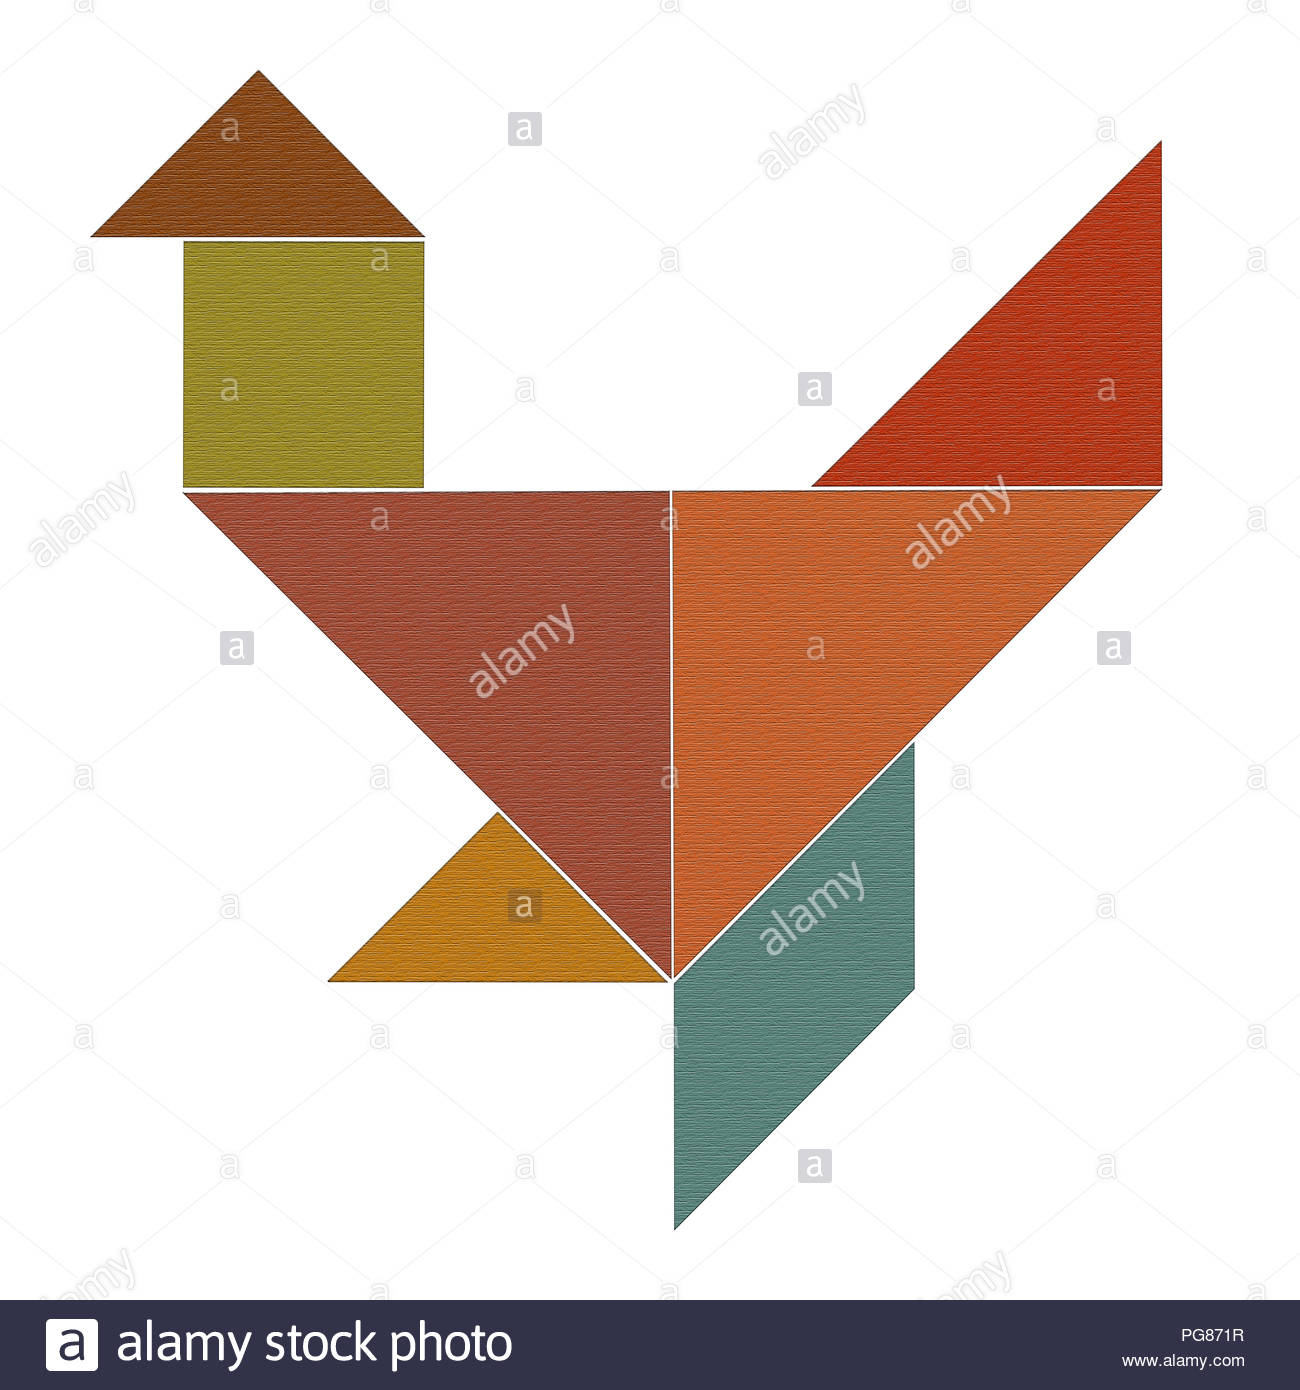 Chicken From Colored Pieces Of Puzzle Tangram, Woody Texture tout Pièces Tangram